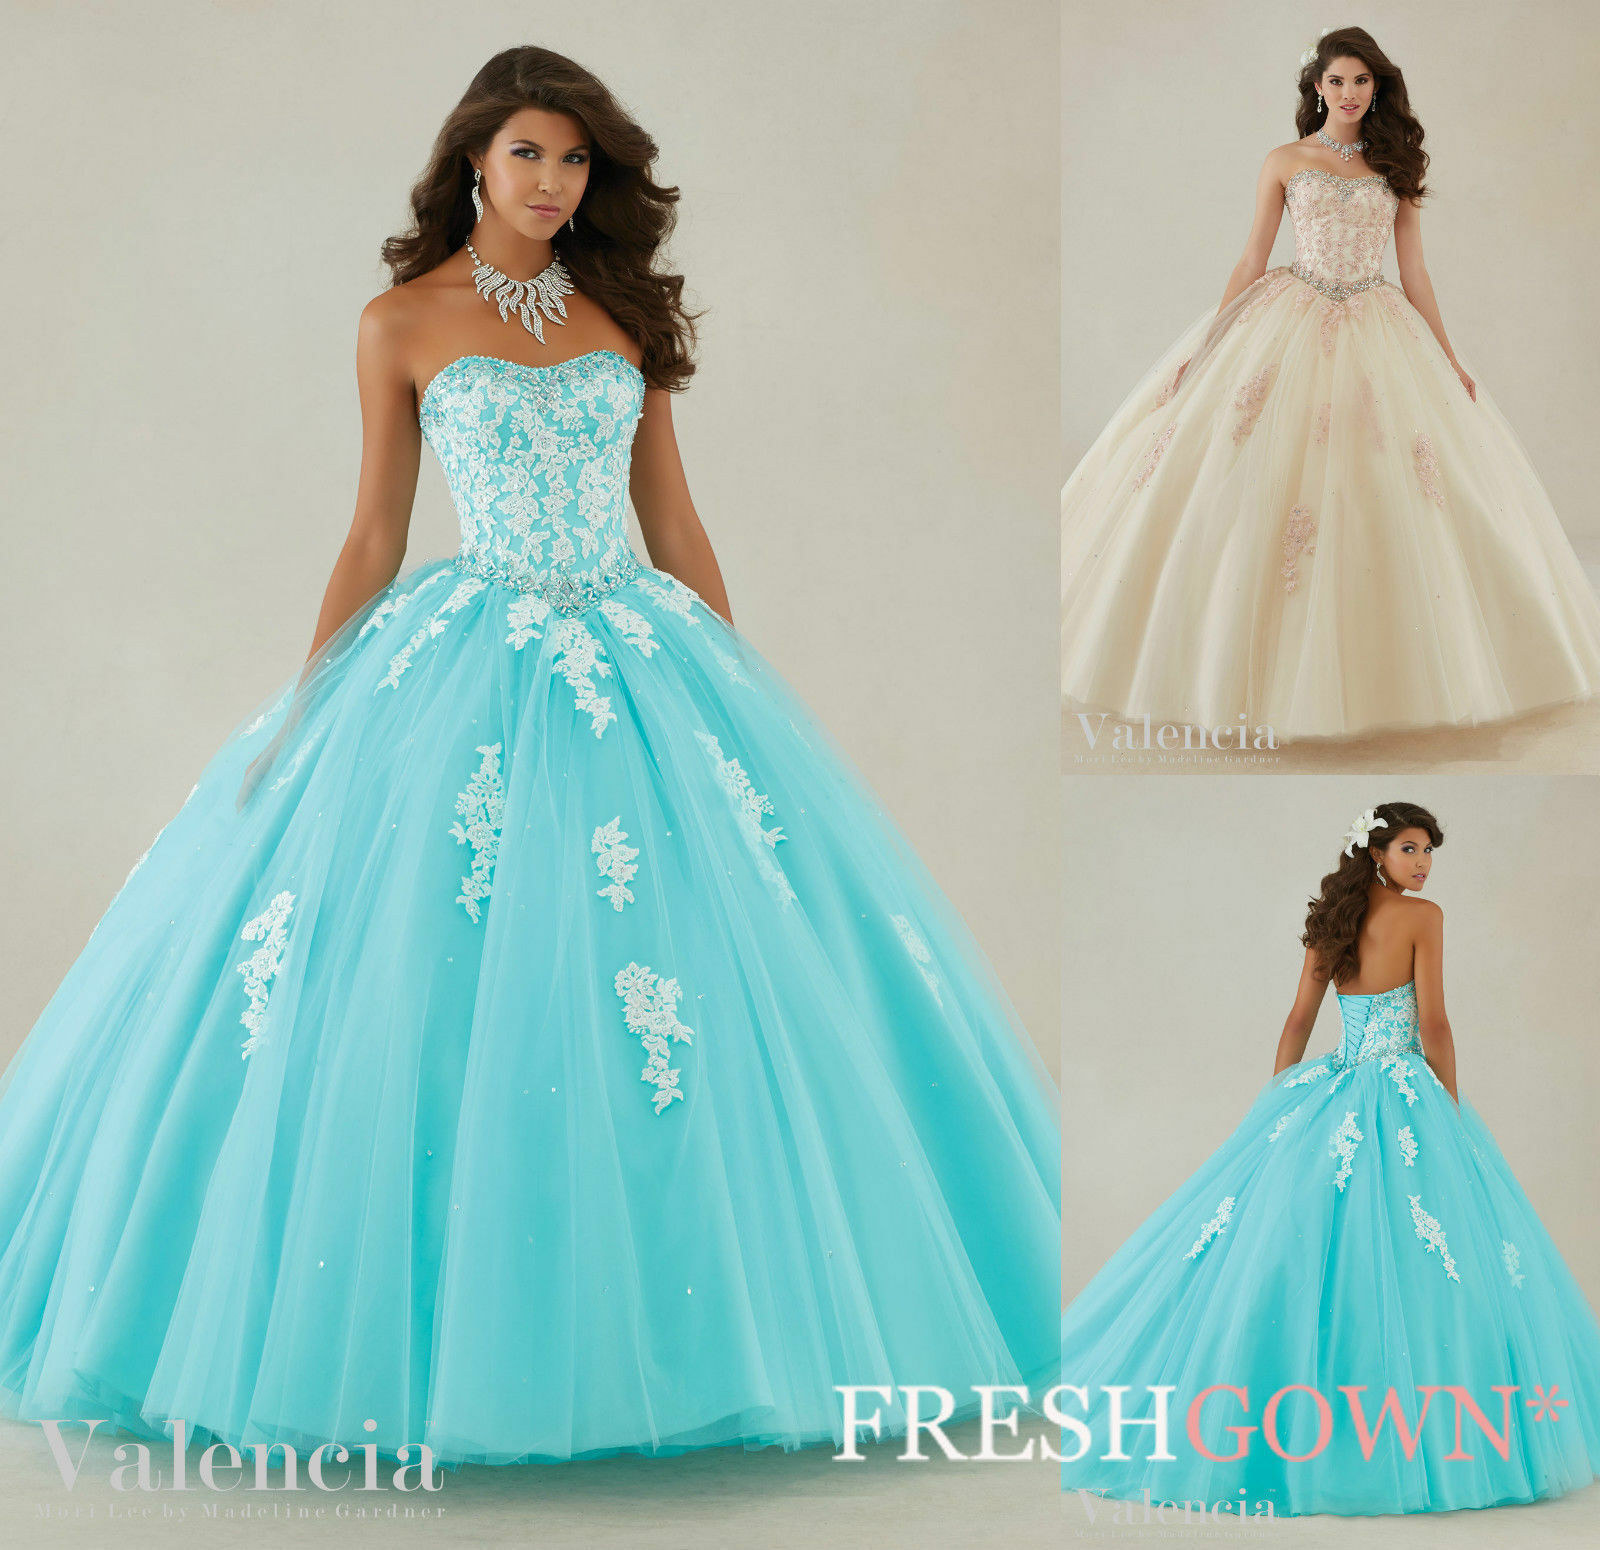 Lace Princess Evening Prom Quinceanera Pageant Party dress Dance Ballgown